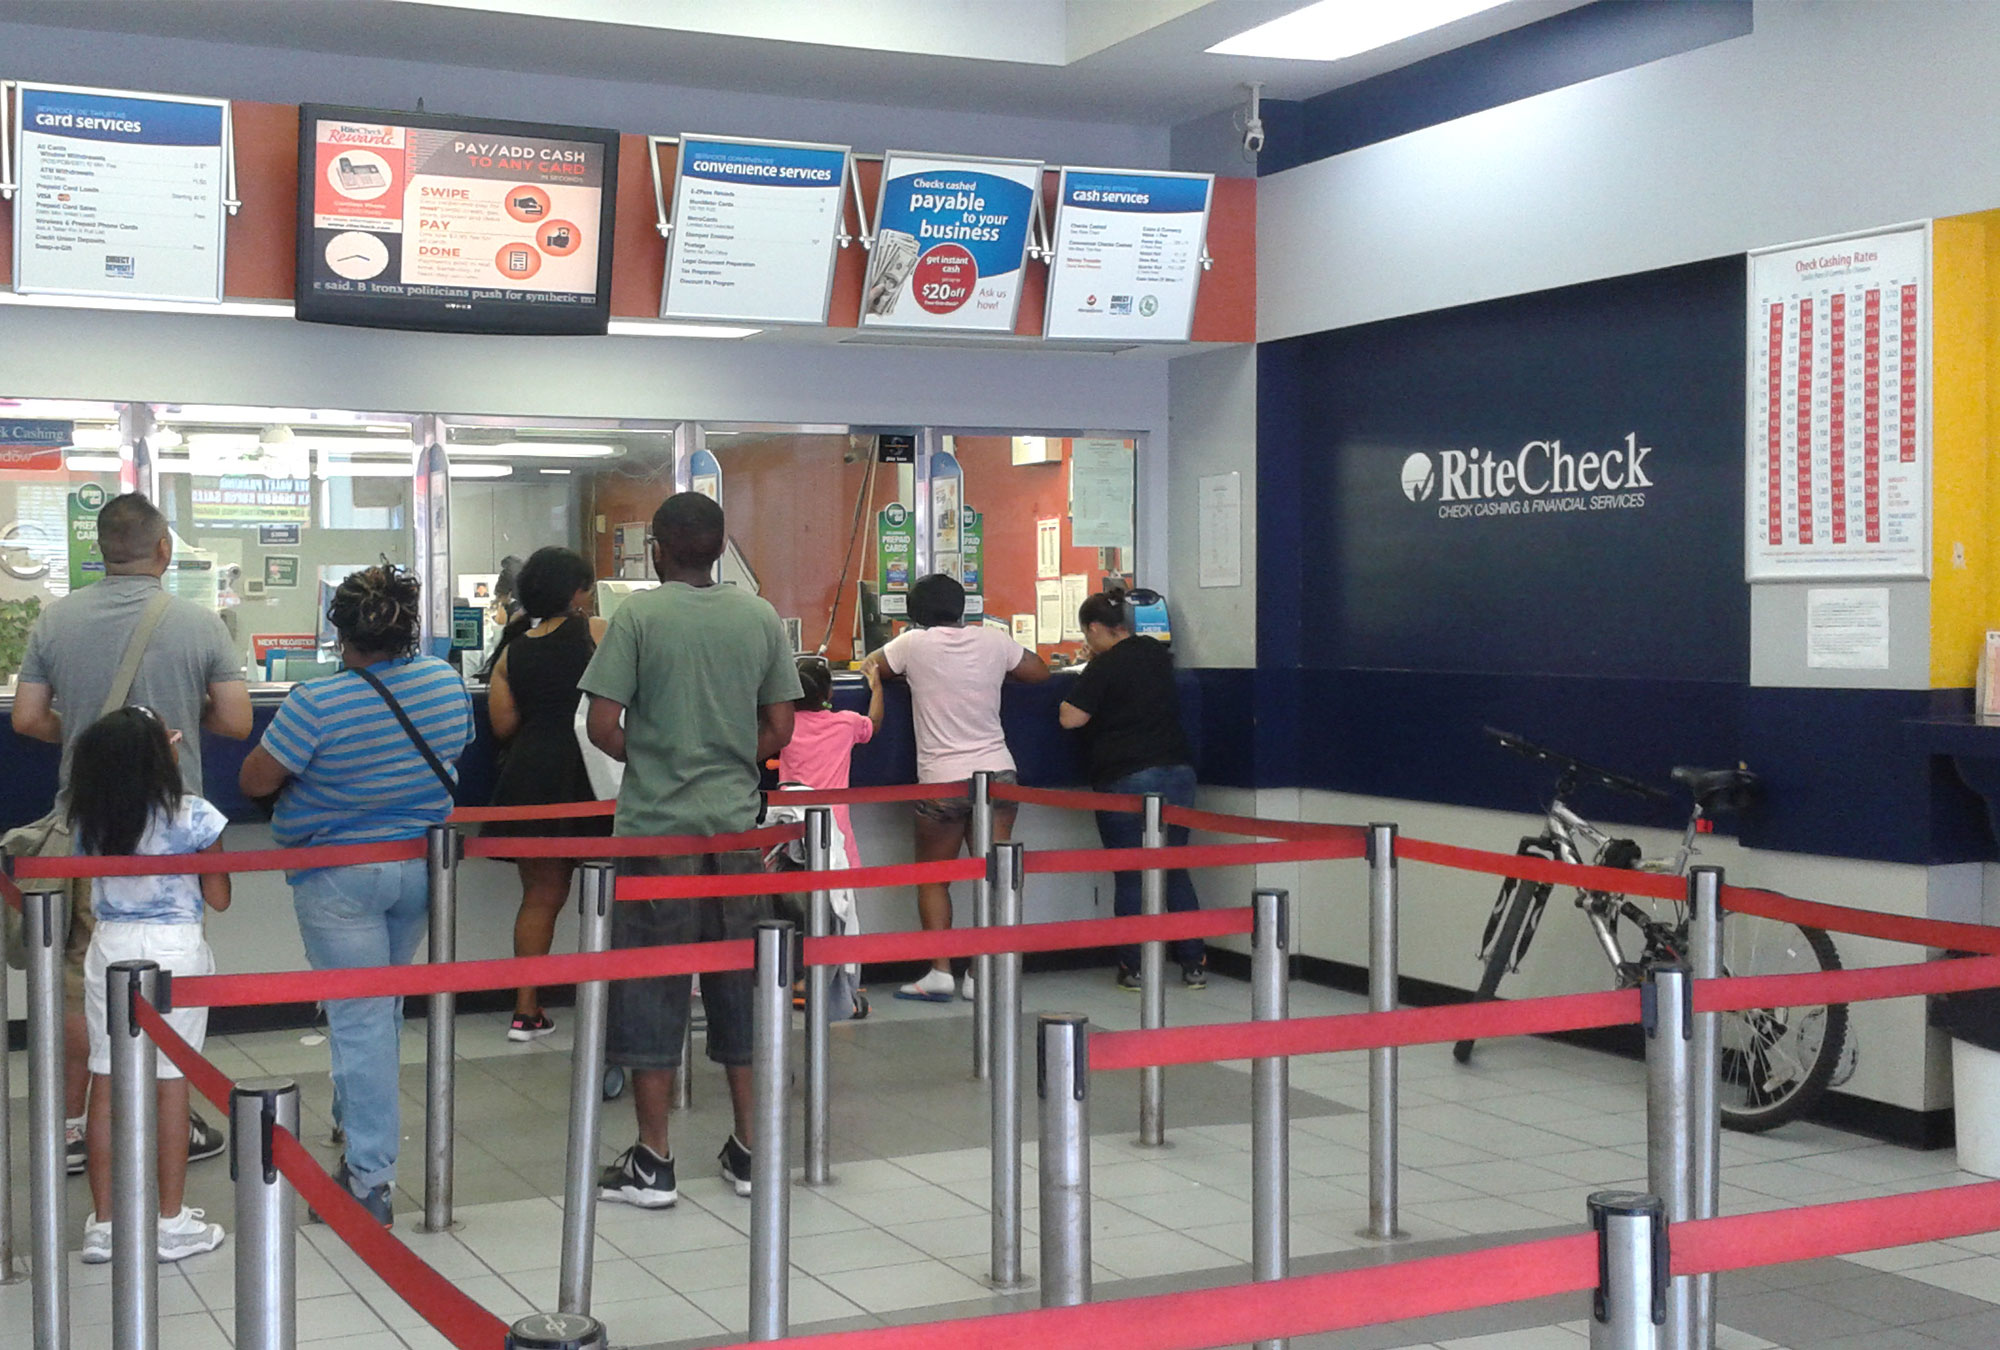 People stand in line at check cashing facility